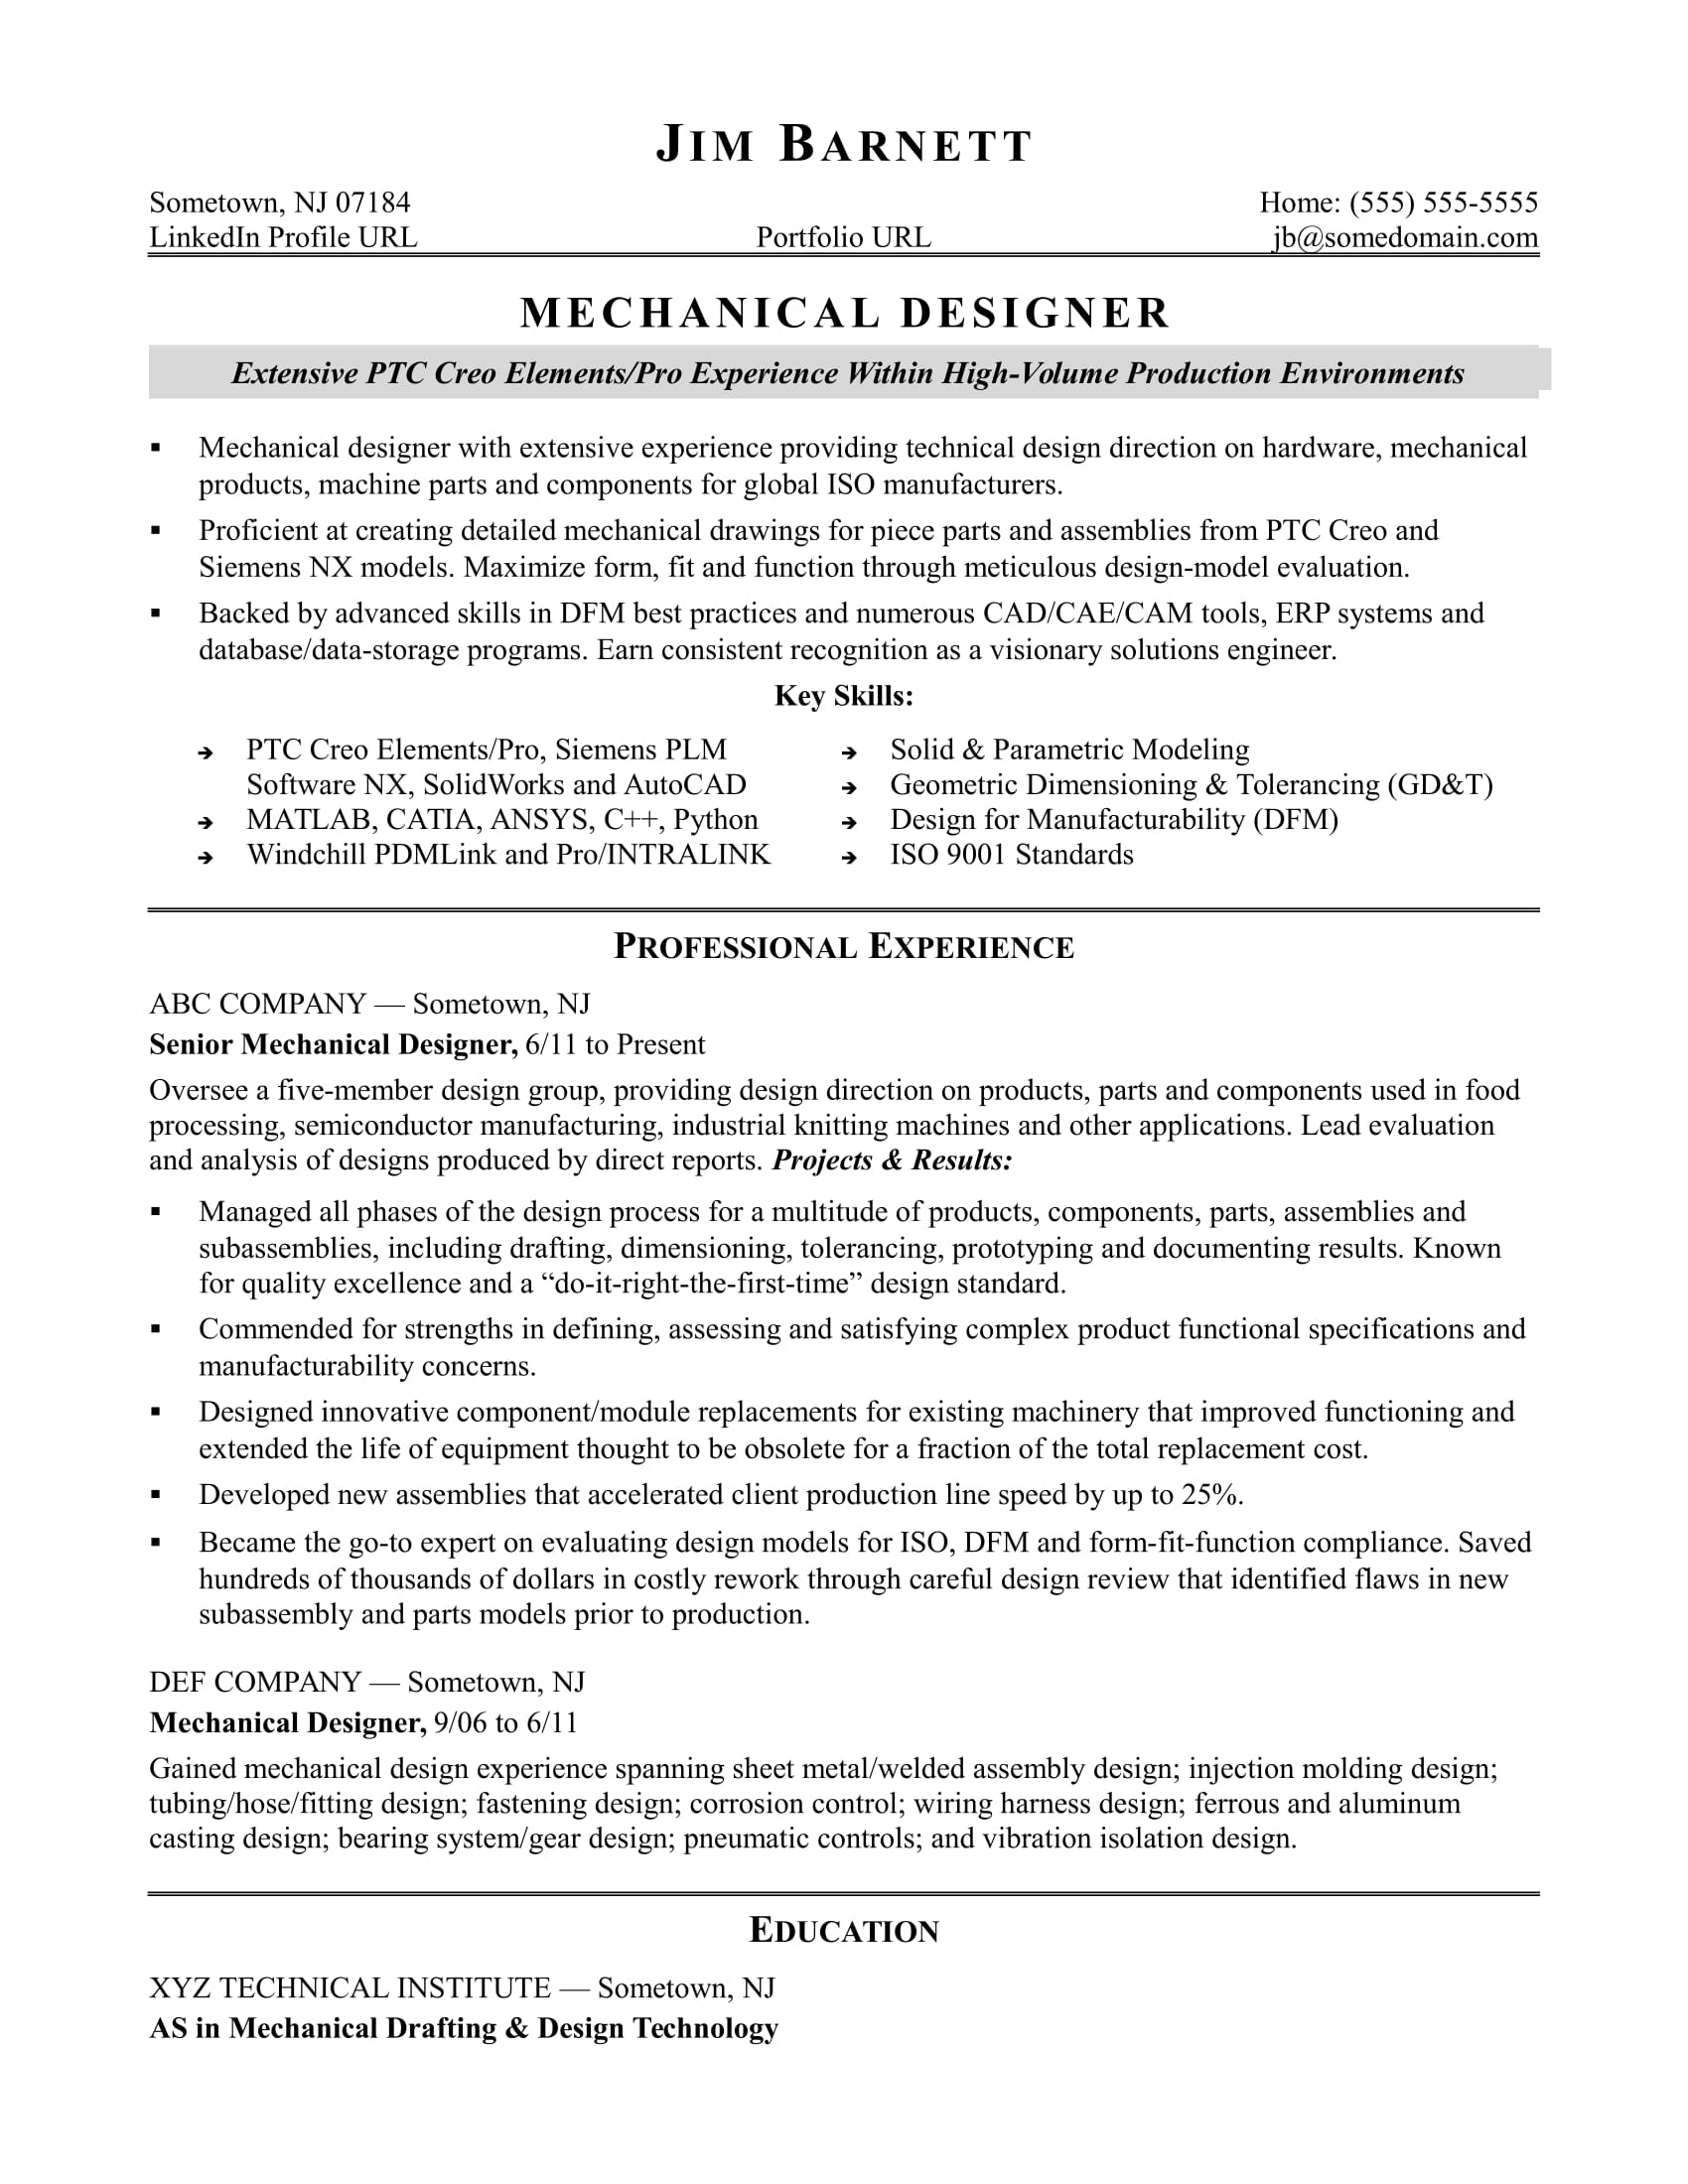 Mechanical Engineering Resume Templates - Sample Resume for An Experienced Mechanical Designer